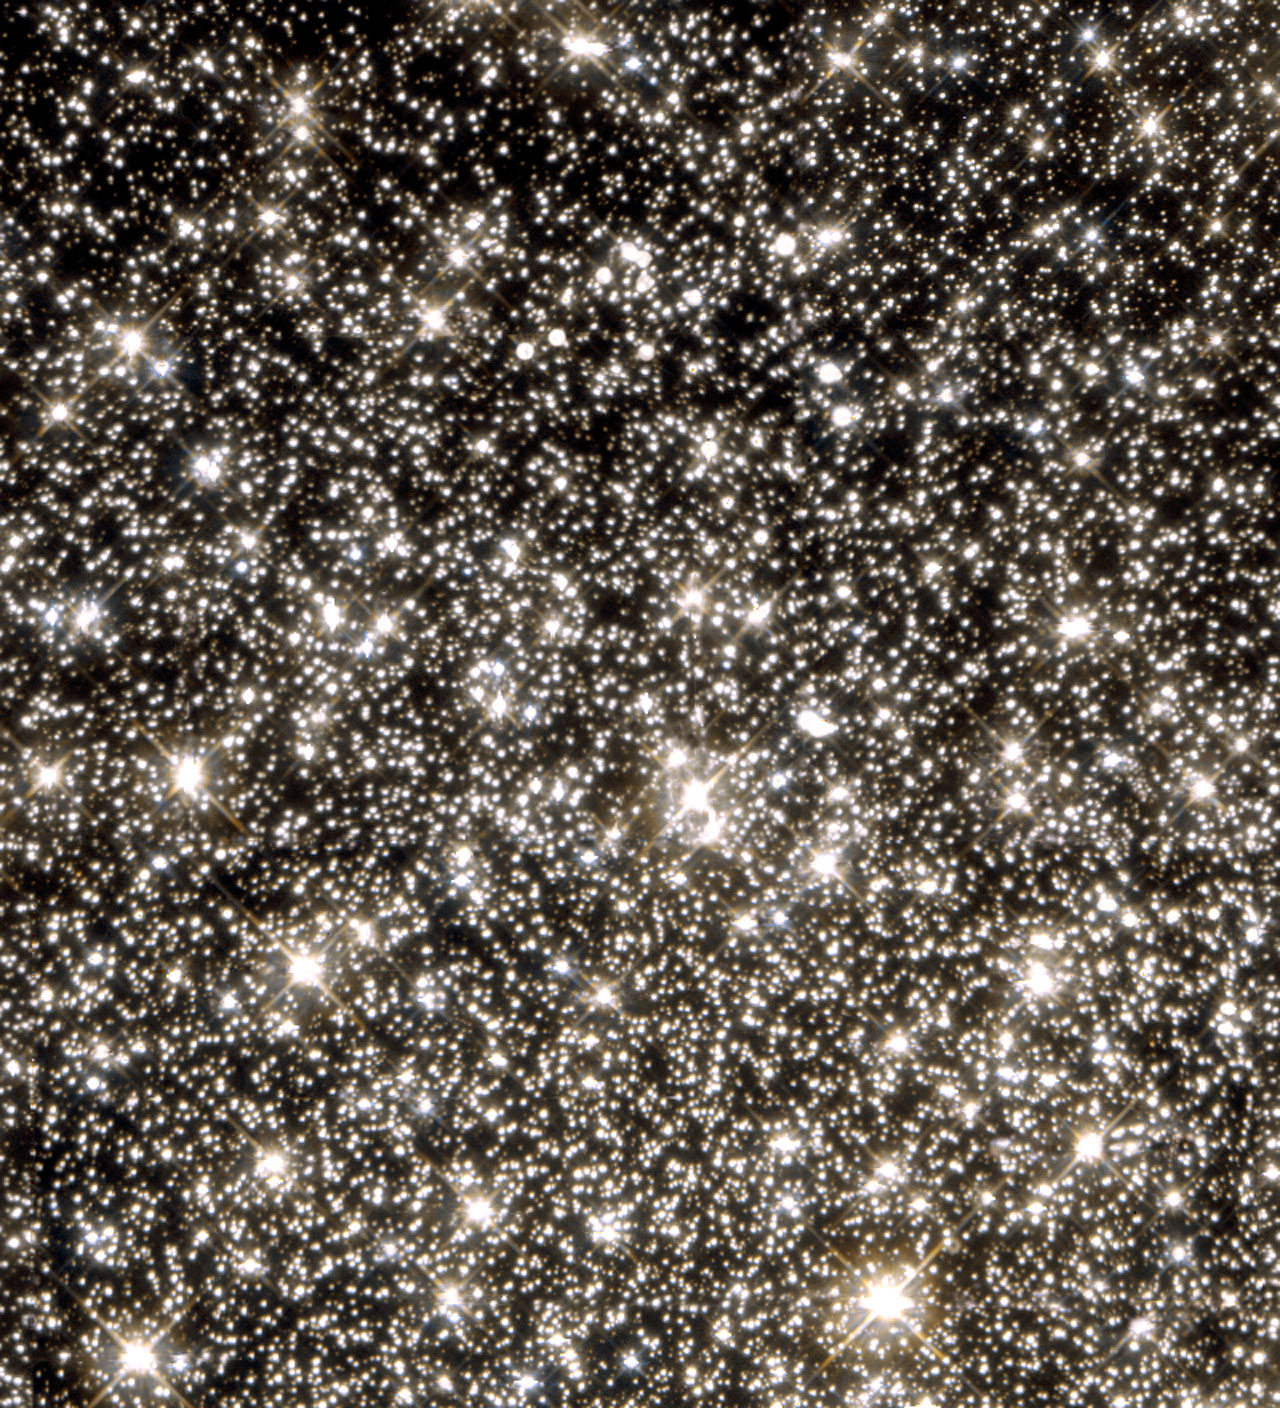 Hint of planet-sized drifters bewilders Hubble scientists (WFPC2 view)